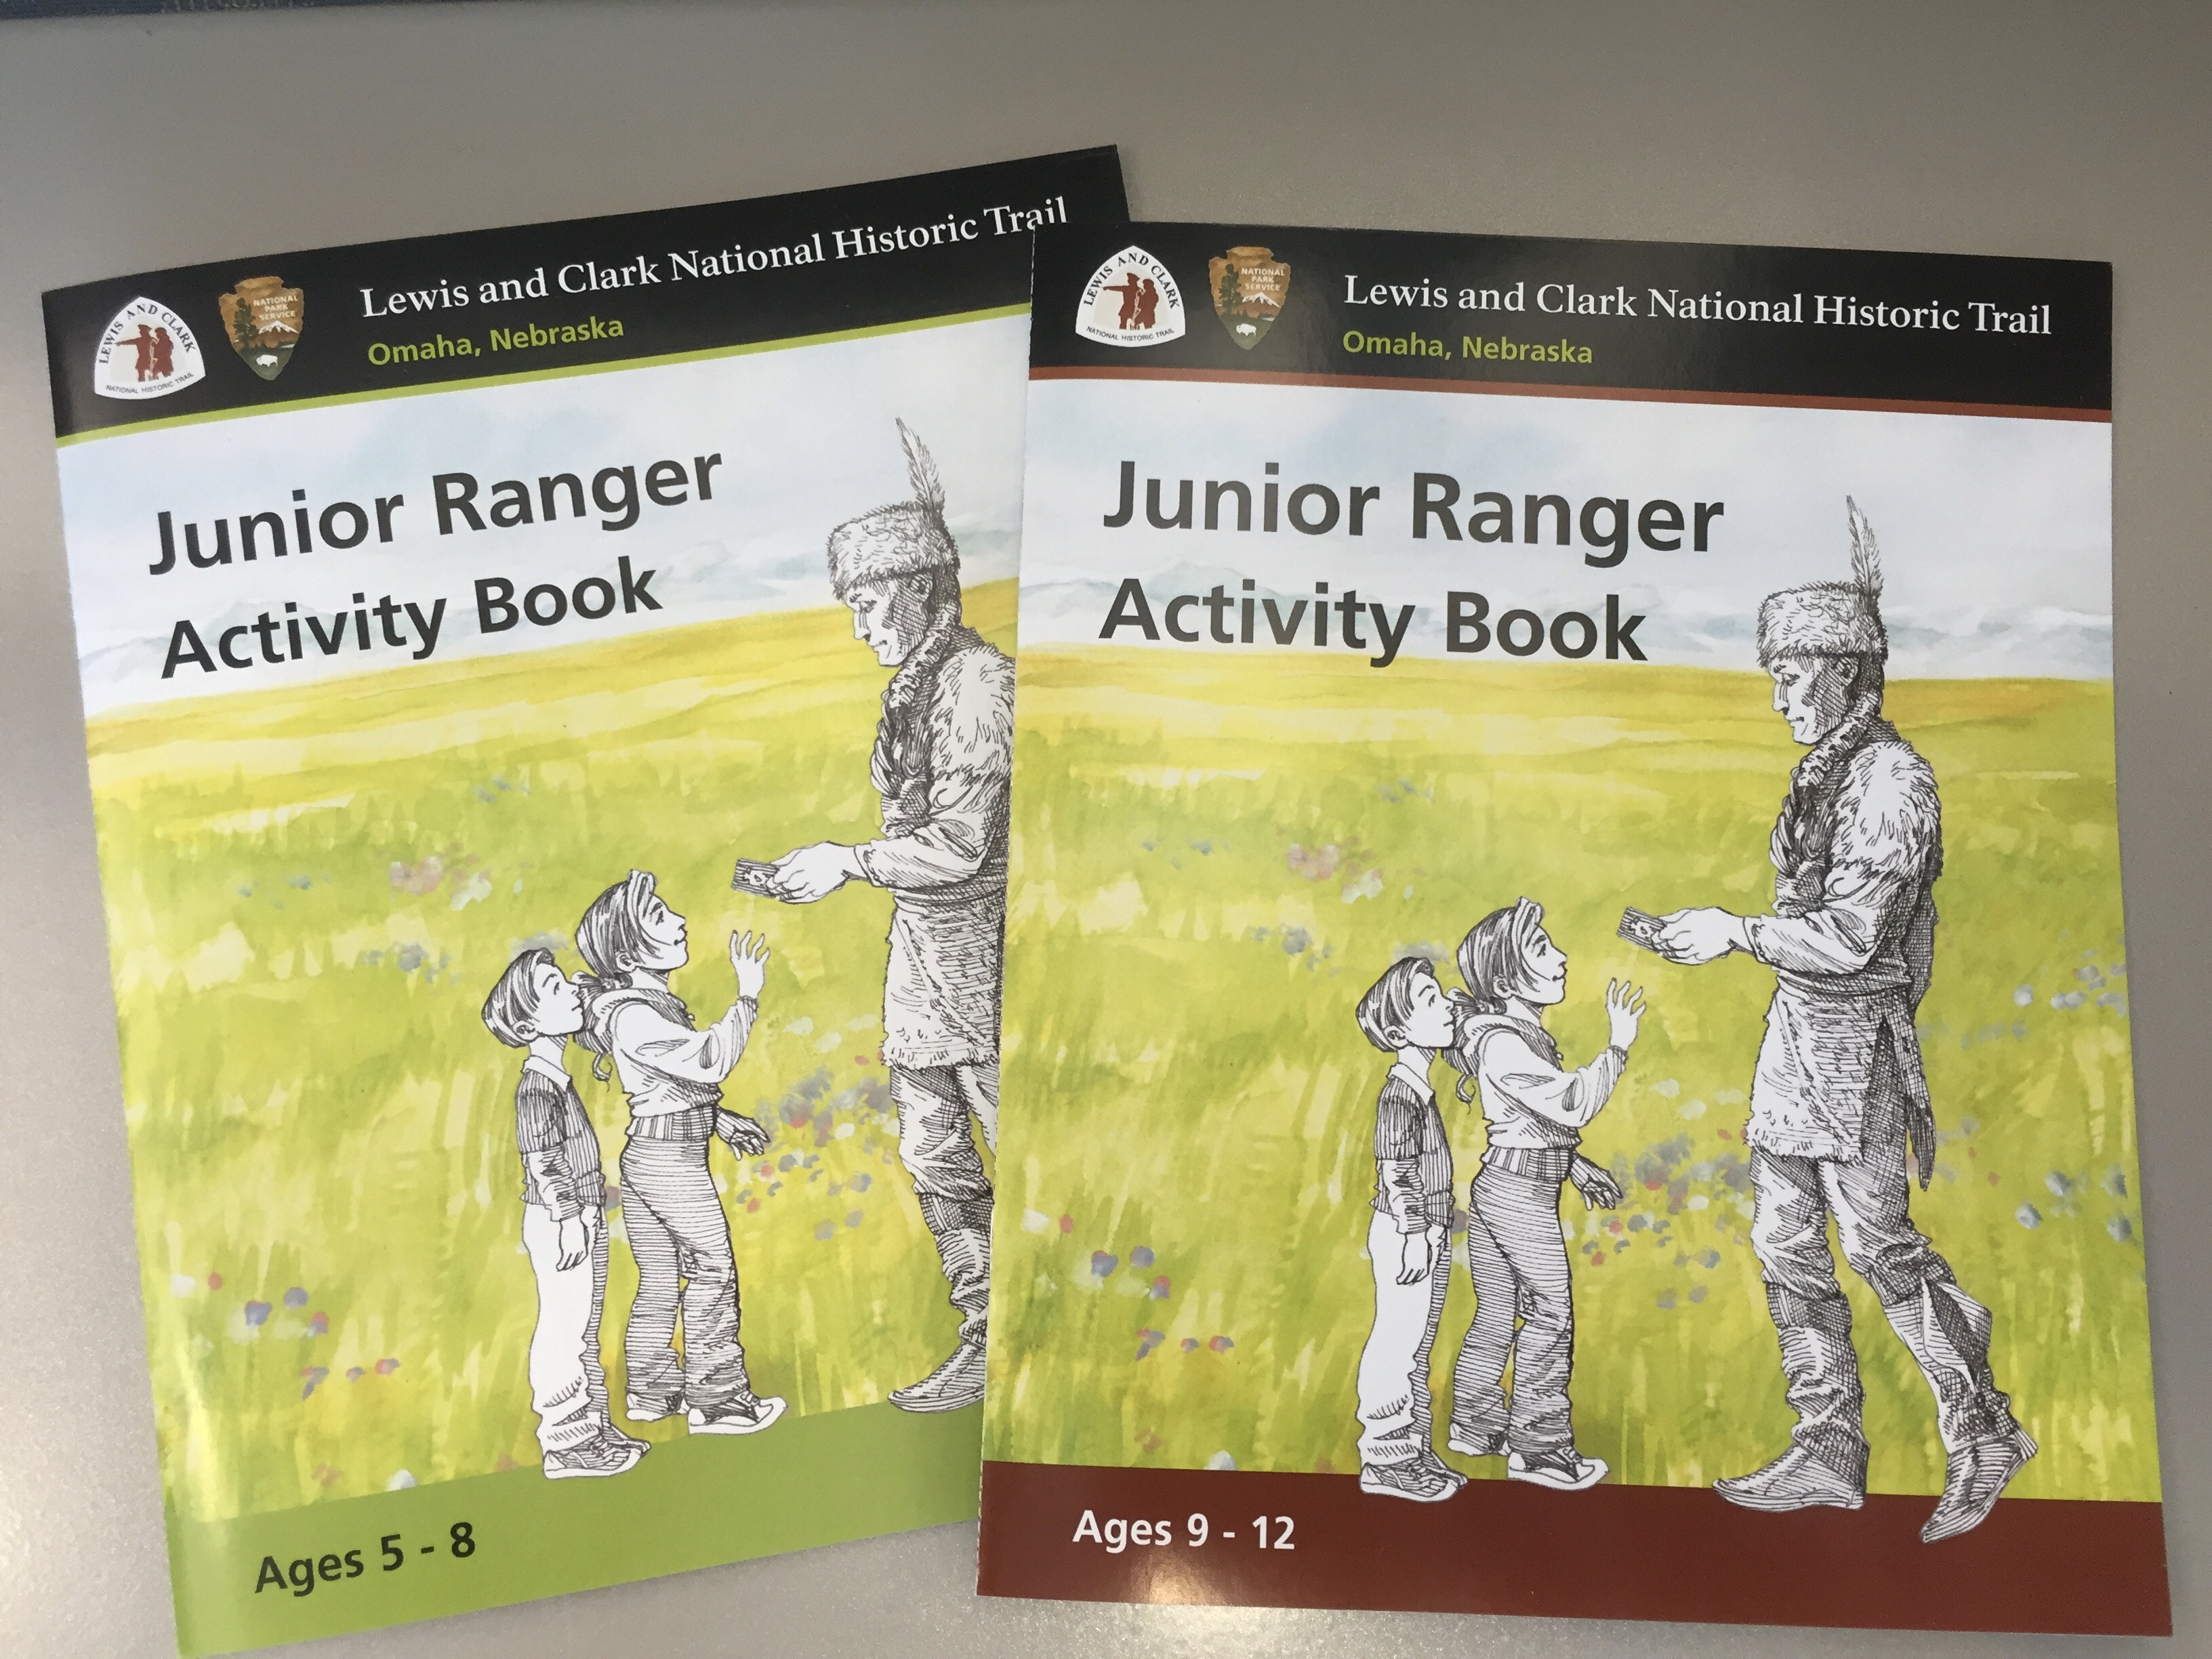 Two Jr. Ranger activity books